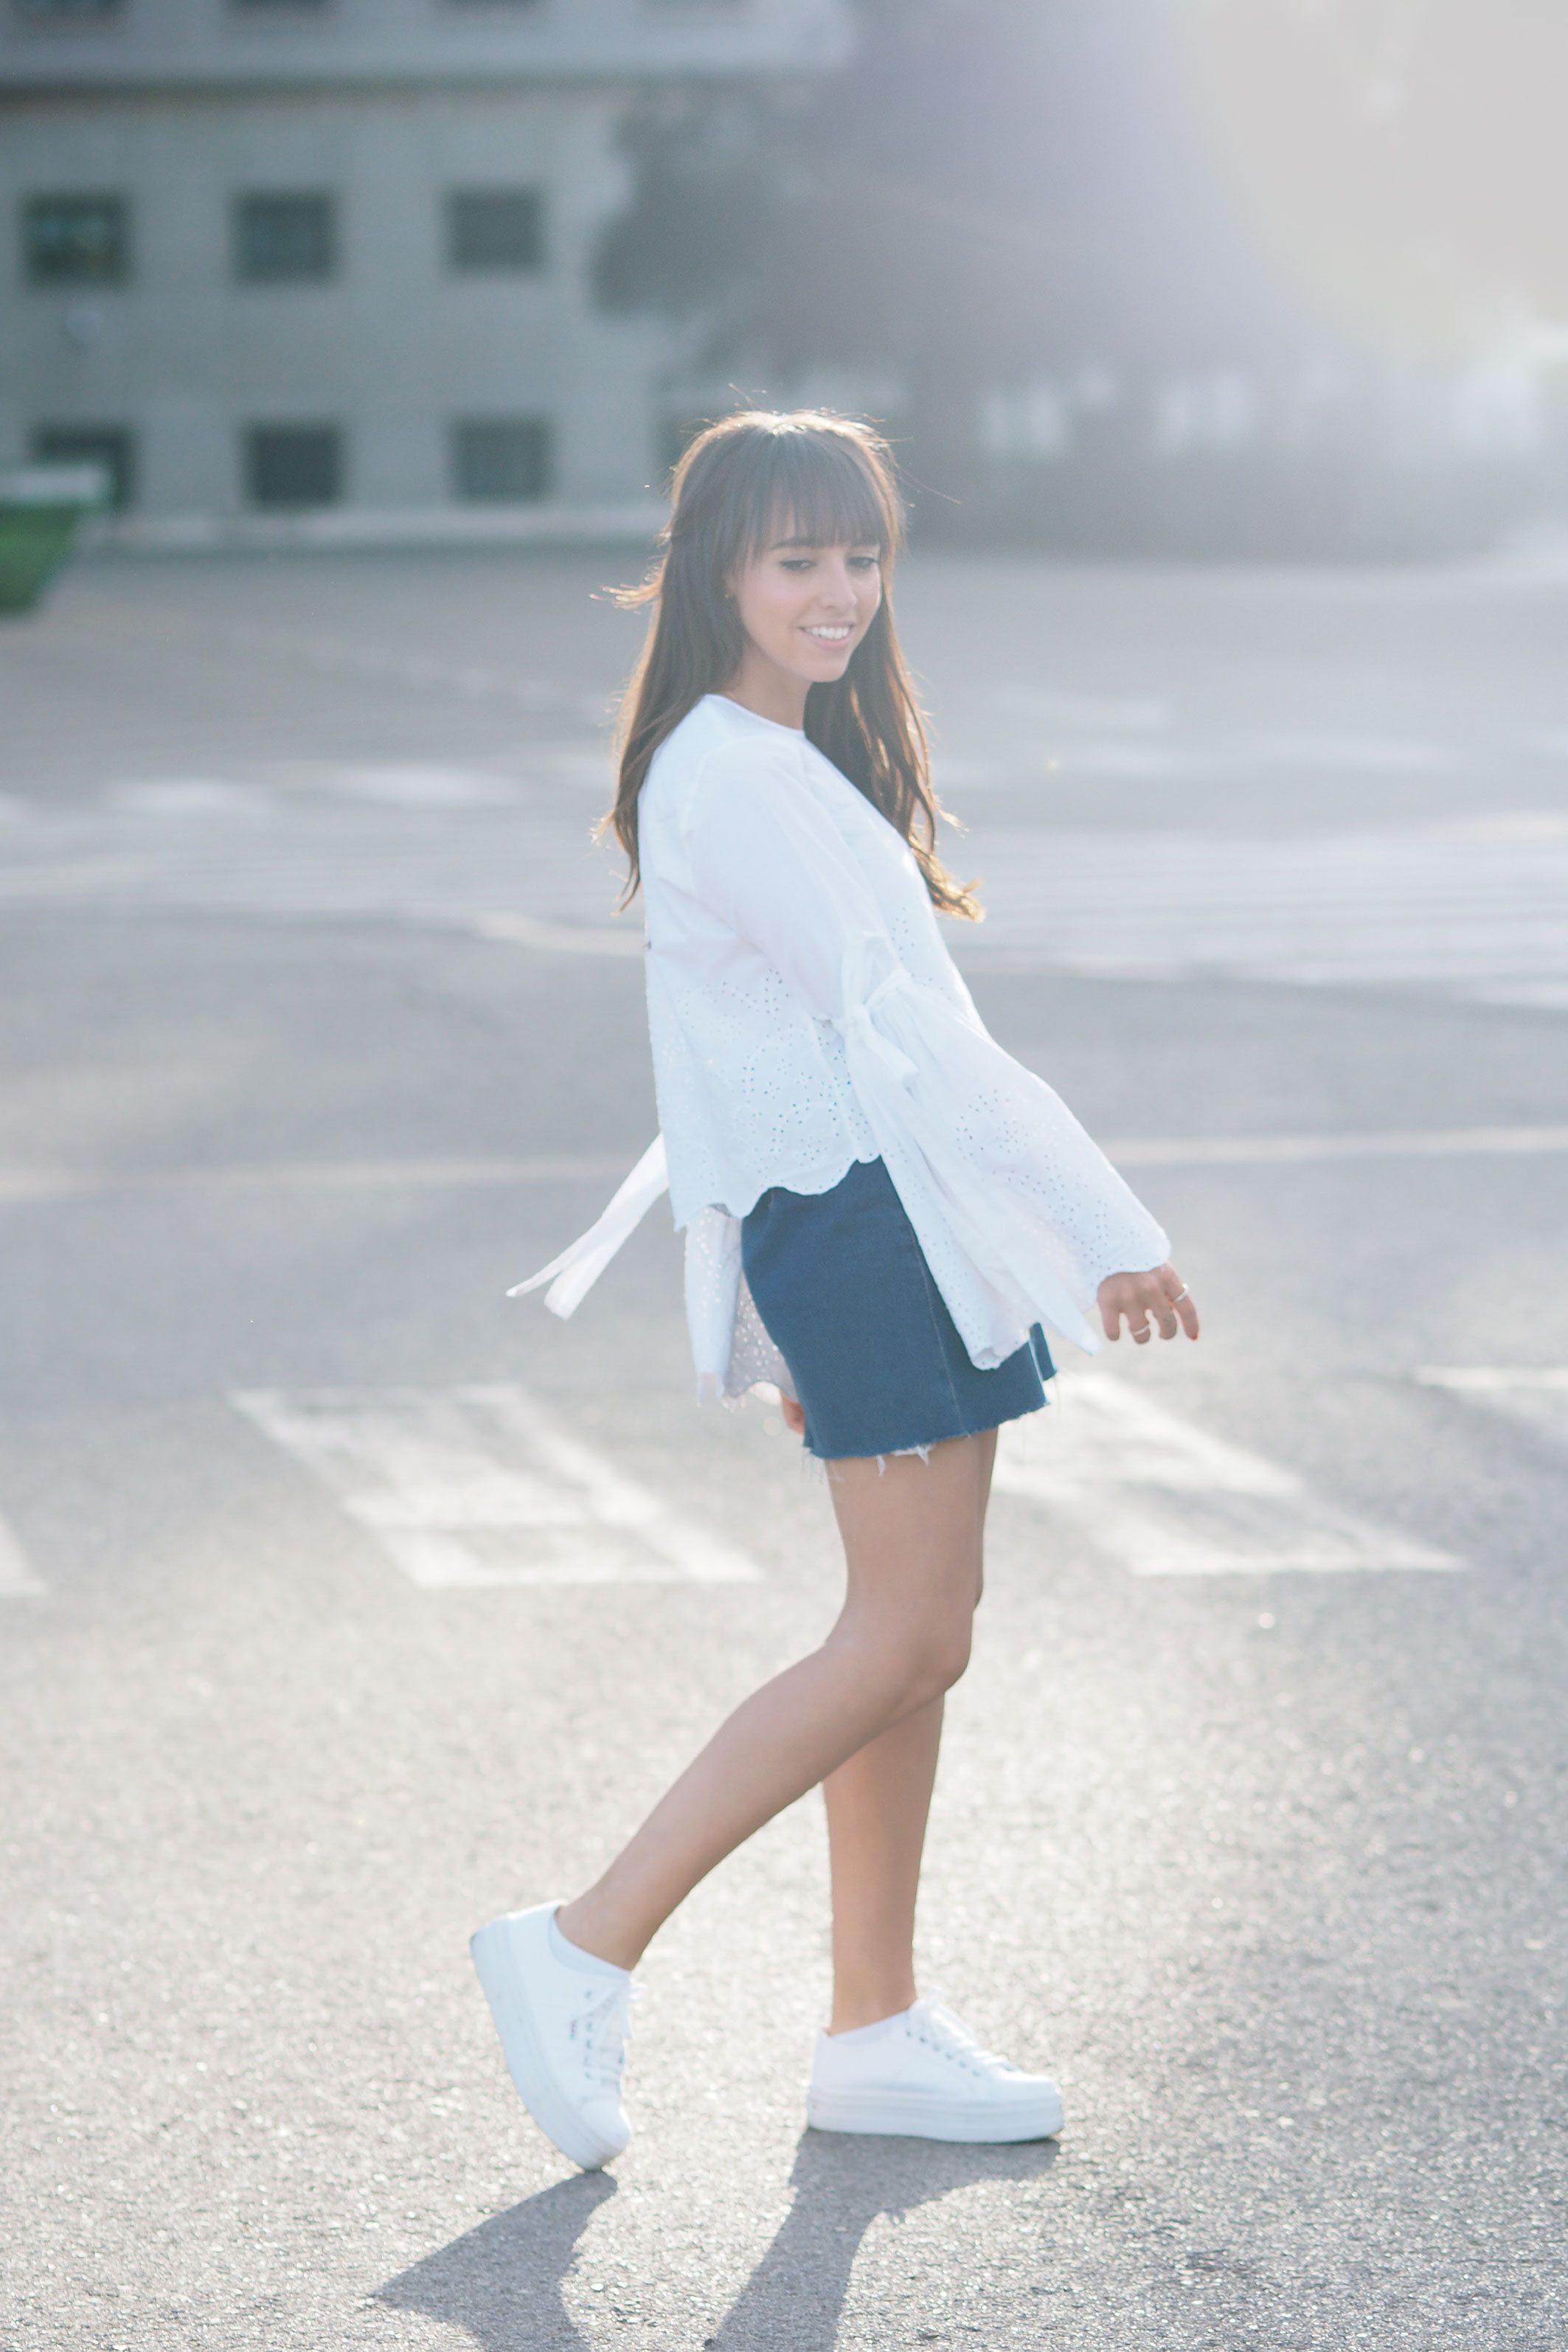 Summer vibes, street style, zapatillas victoria plataforma, flared sleaves, denim skirt, white sneakers